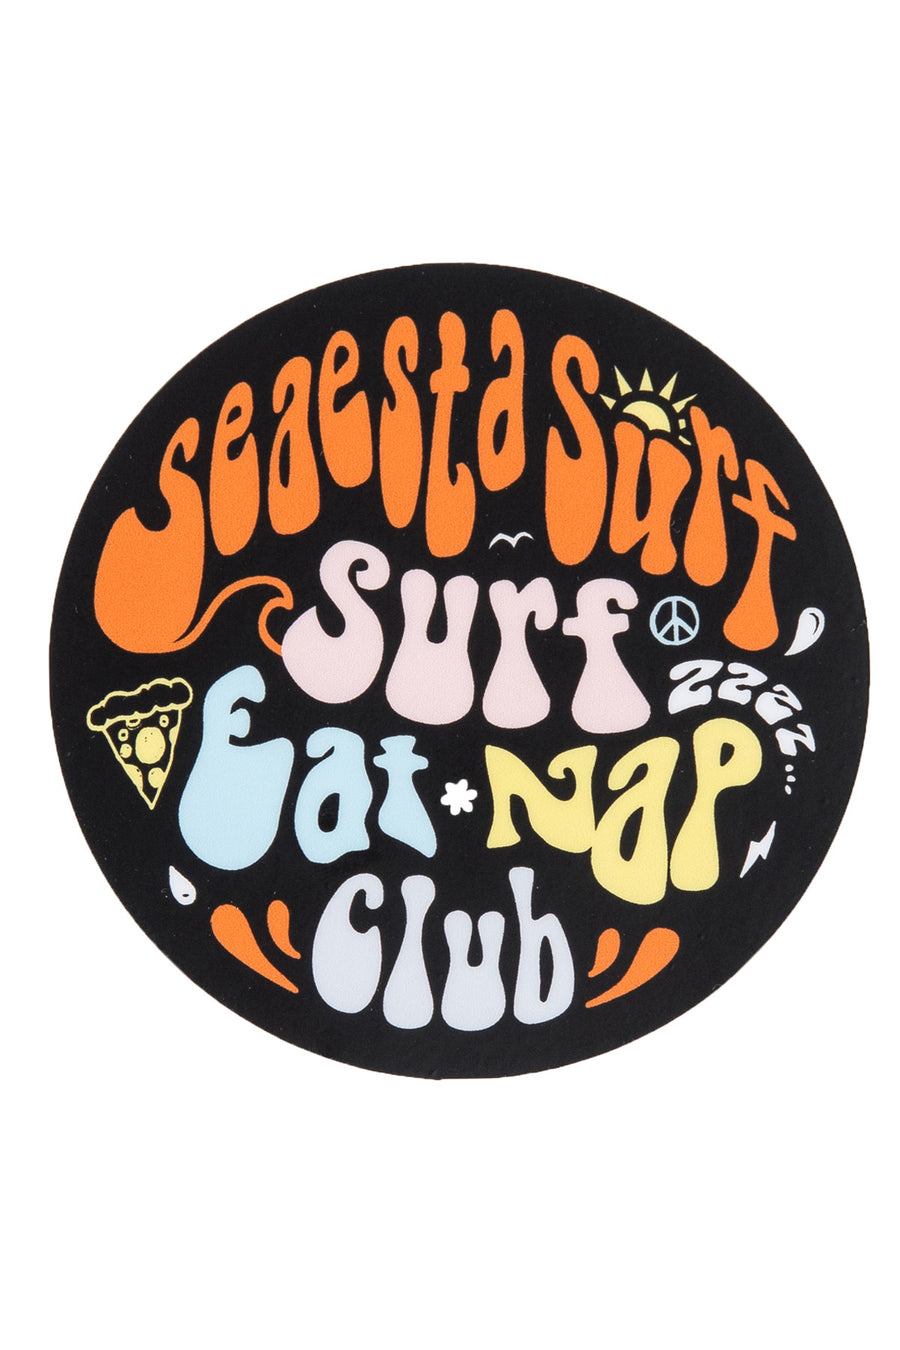 Surf Eat Nap Club | Seaesta Surf Sticker